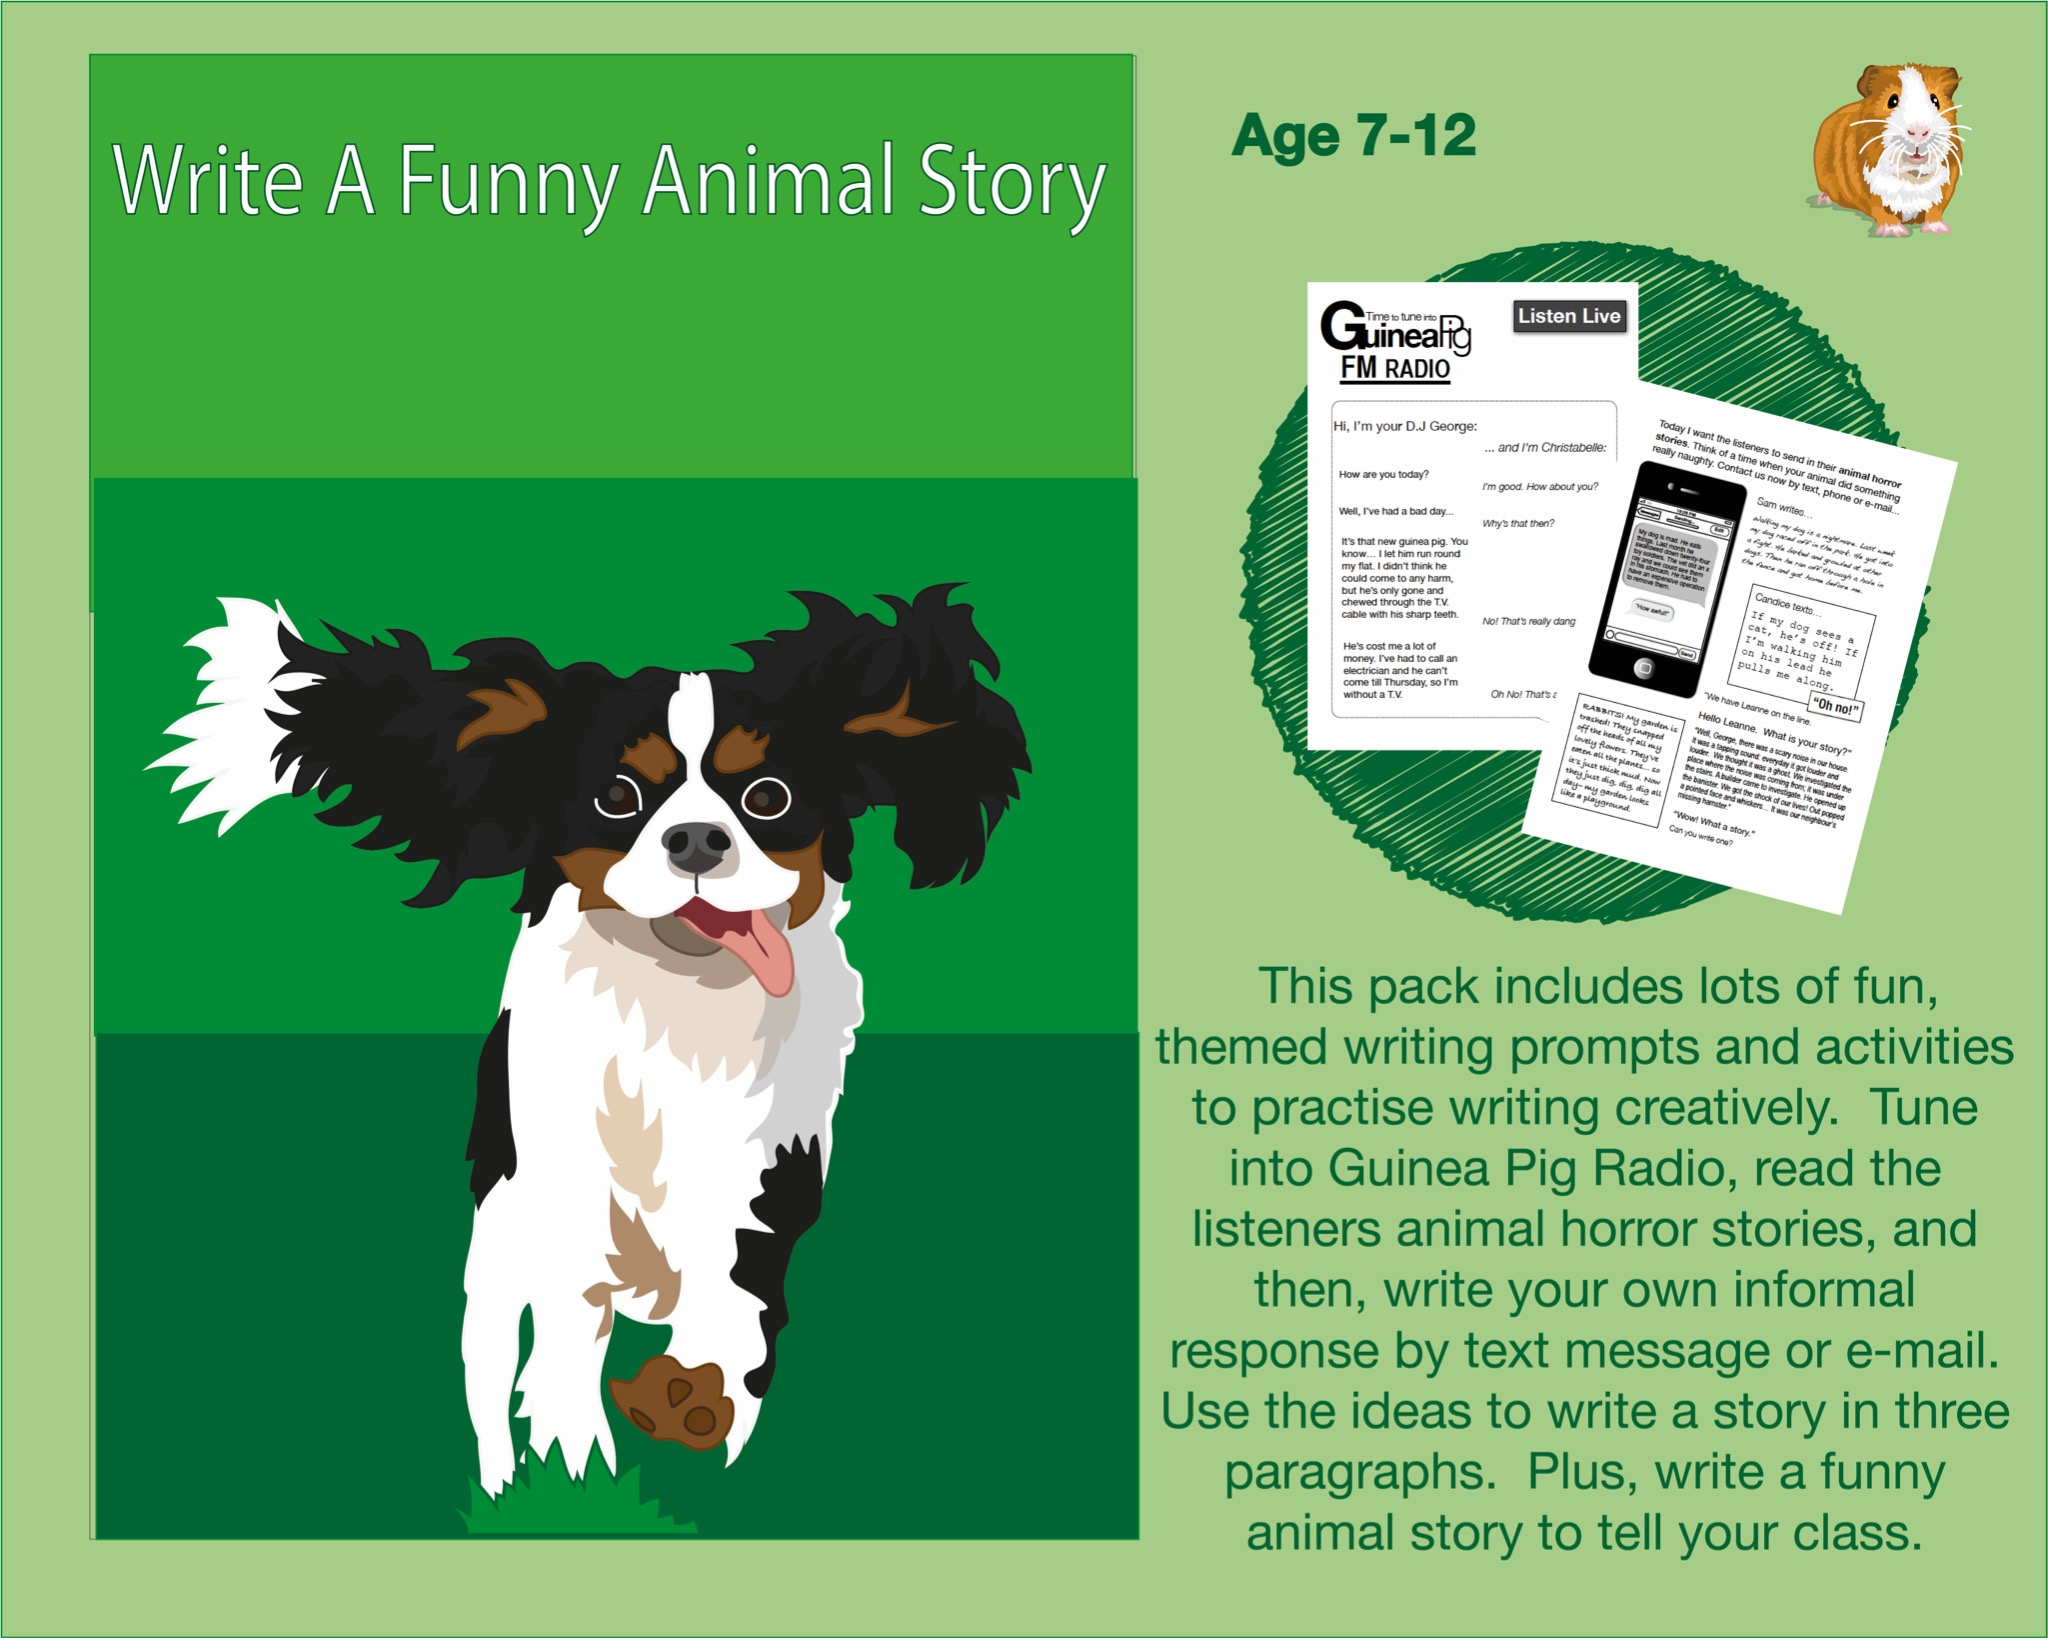 Write A Funny Animal Story (7-12 years)